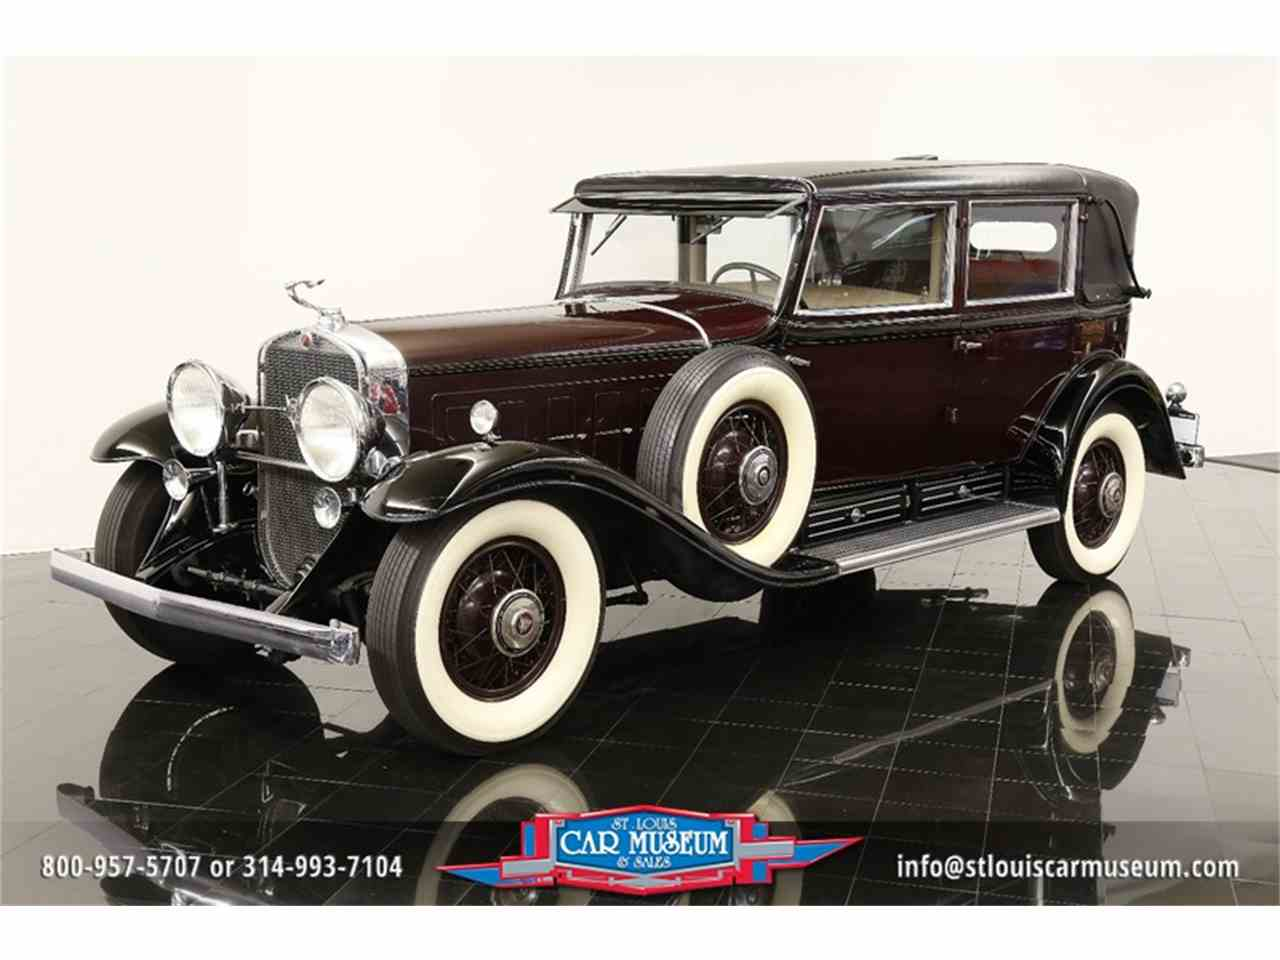 1931 Cadillac V-16 Madam X Landau Sedan for Sale | ClassicCars.com ...